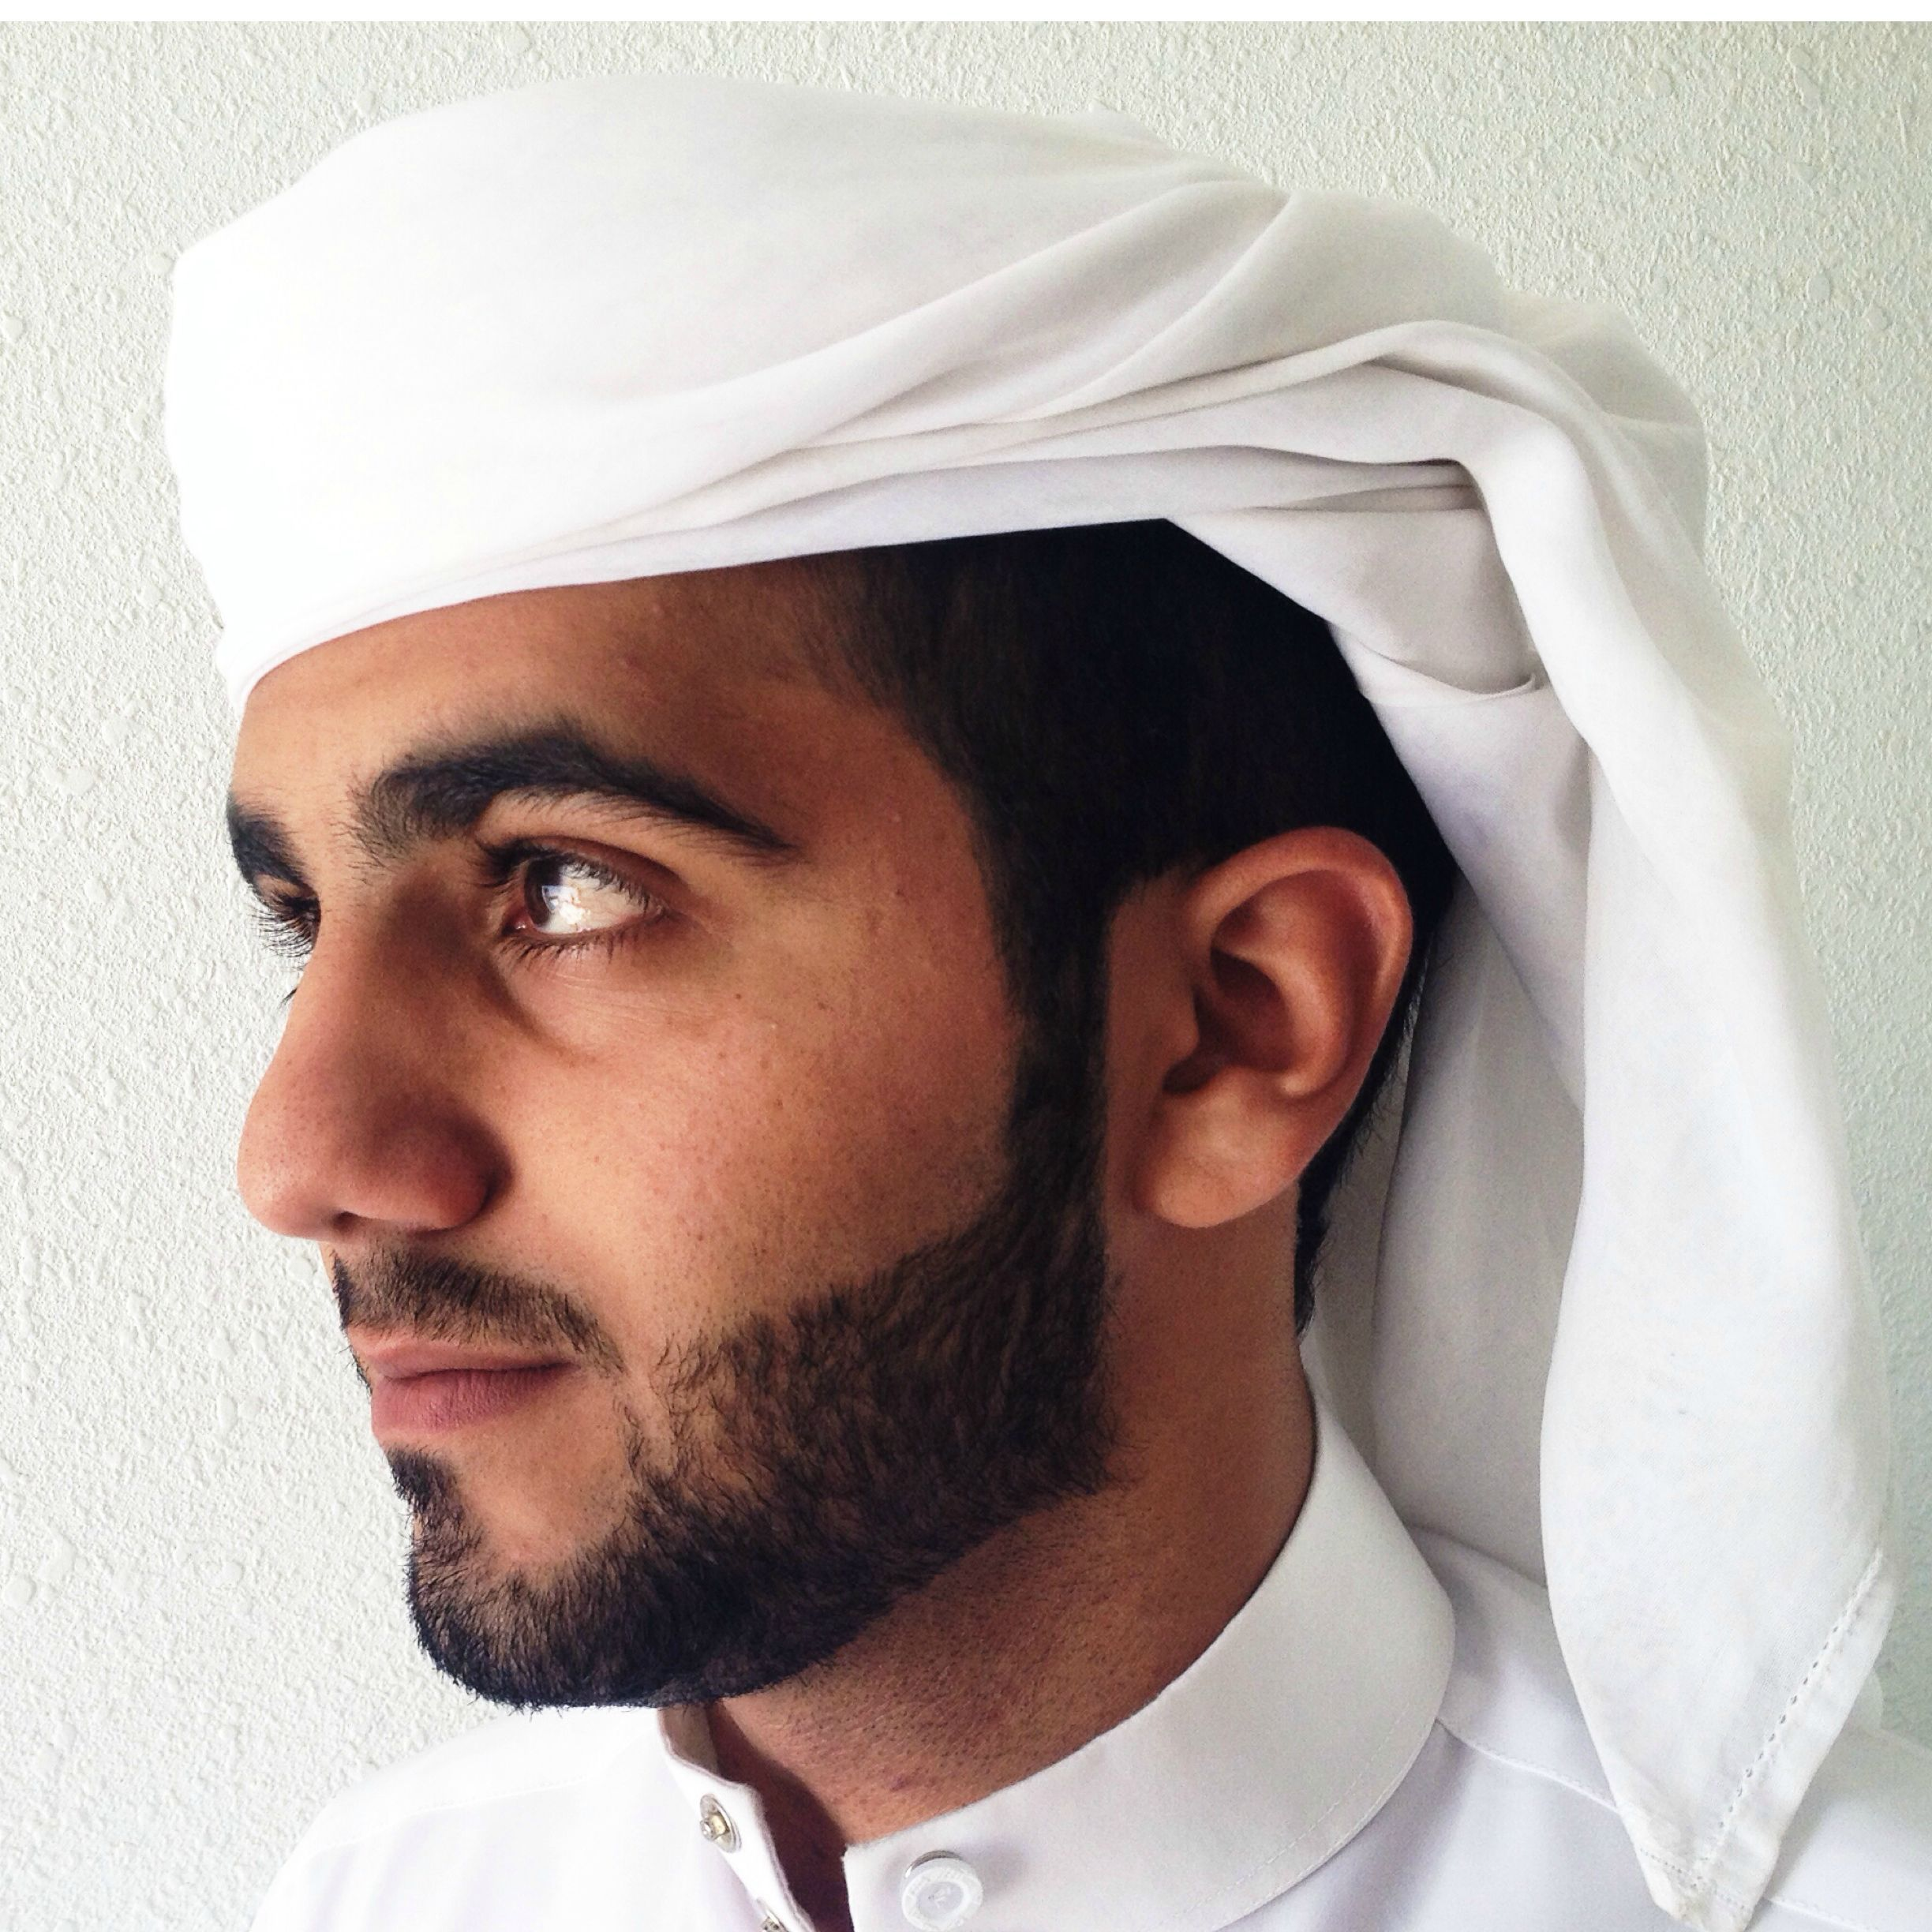 arabic styled beard 25 popular beard styles for arabic men - HD 2448×2448